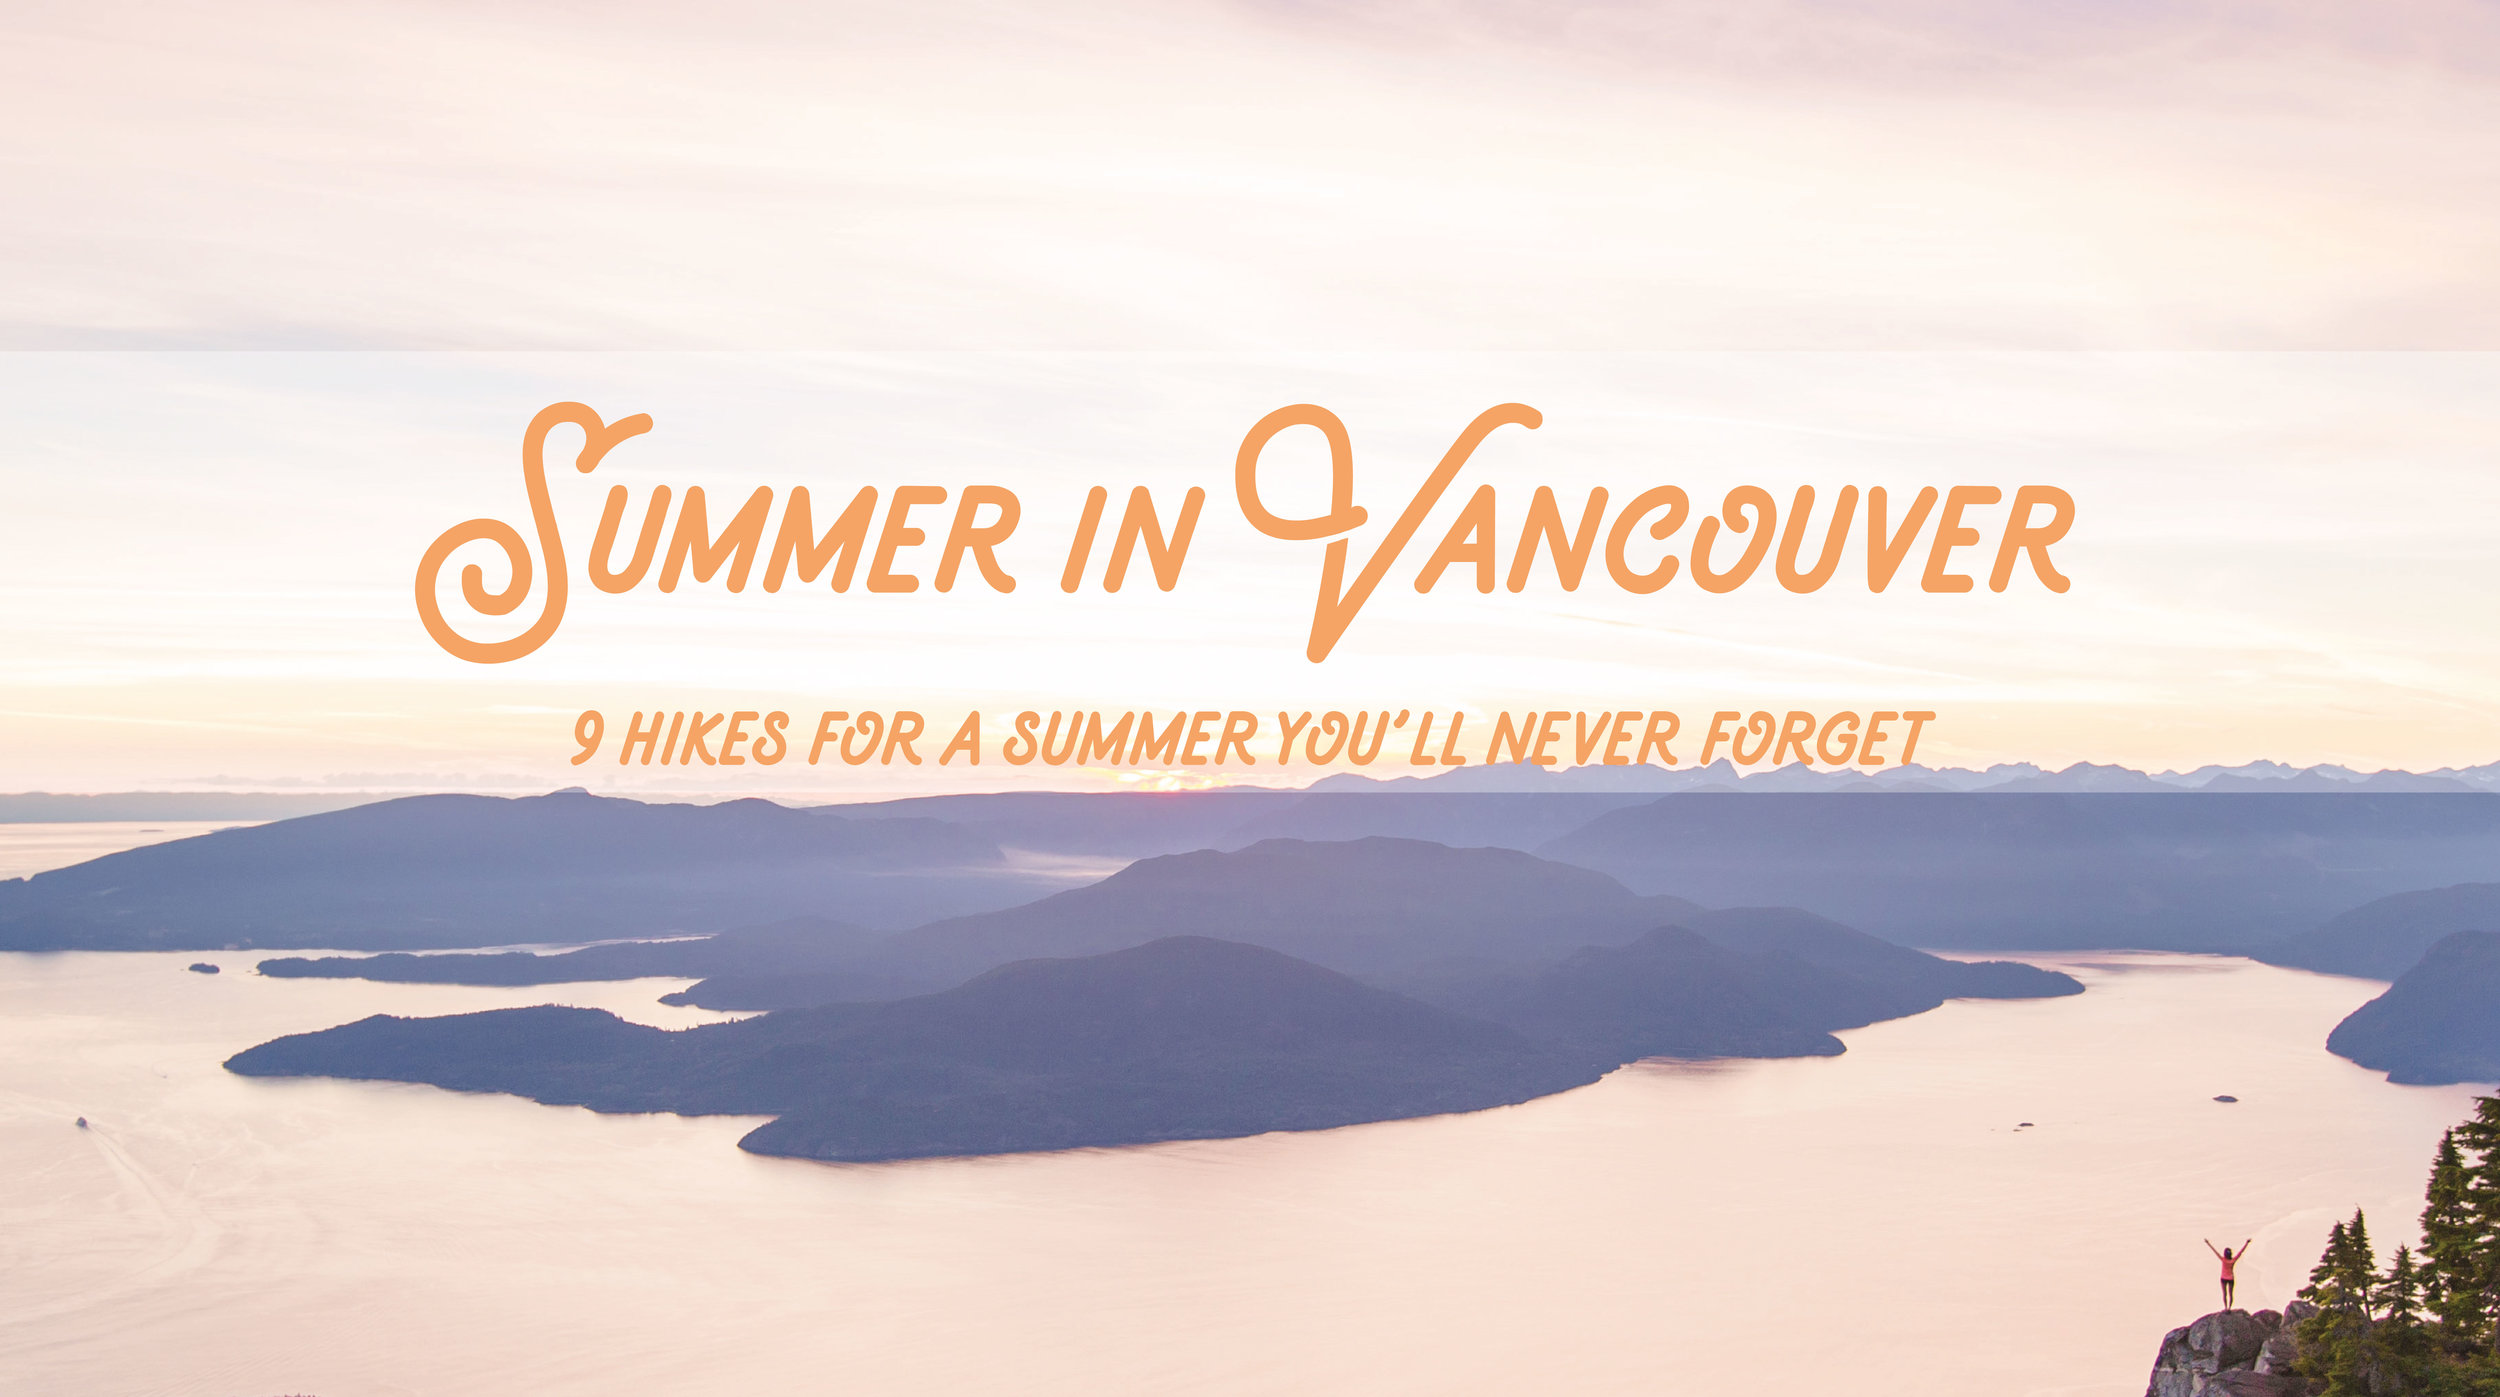 Summer in Vancouver: 9 hikes for a summer you'll never forget